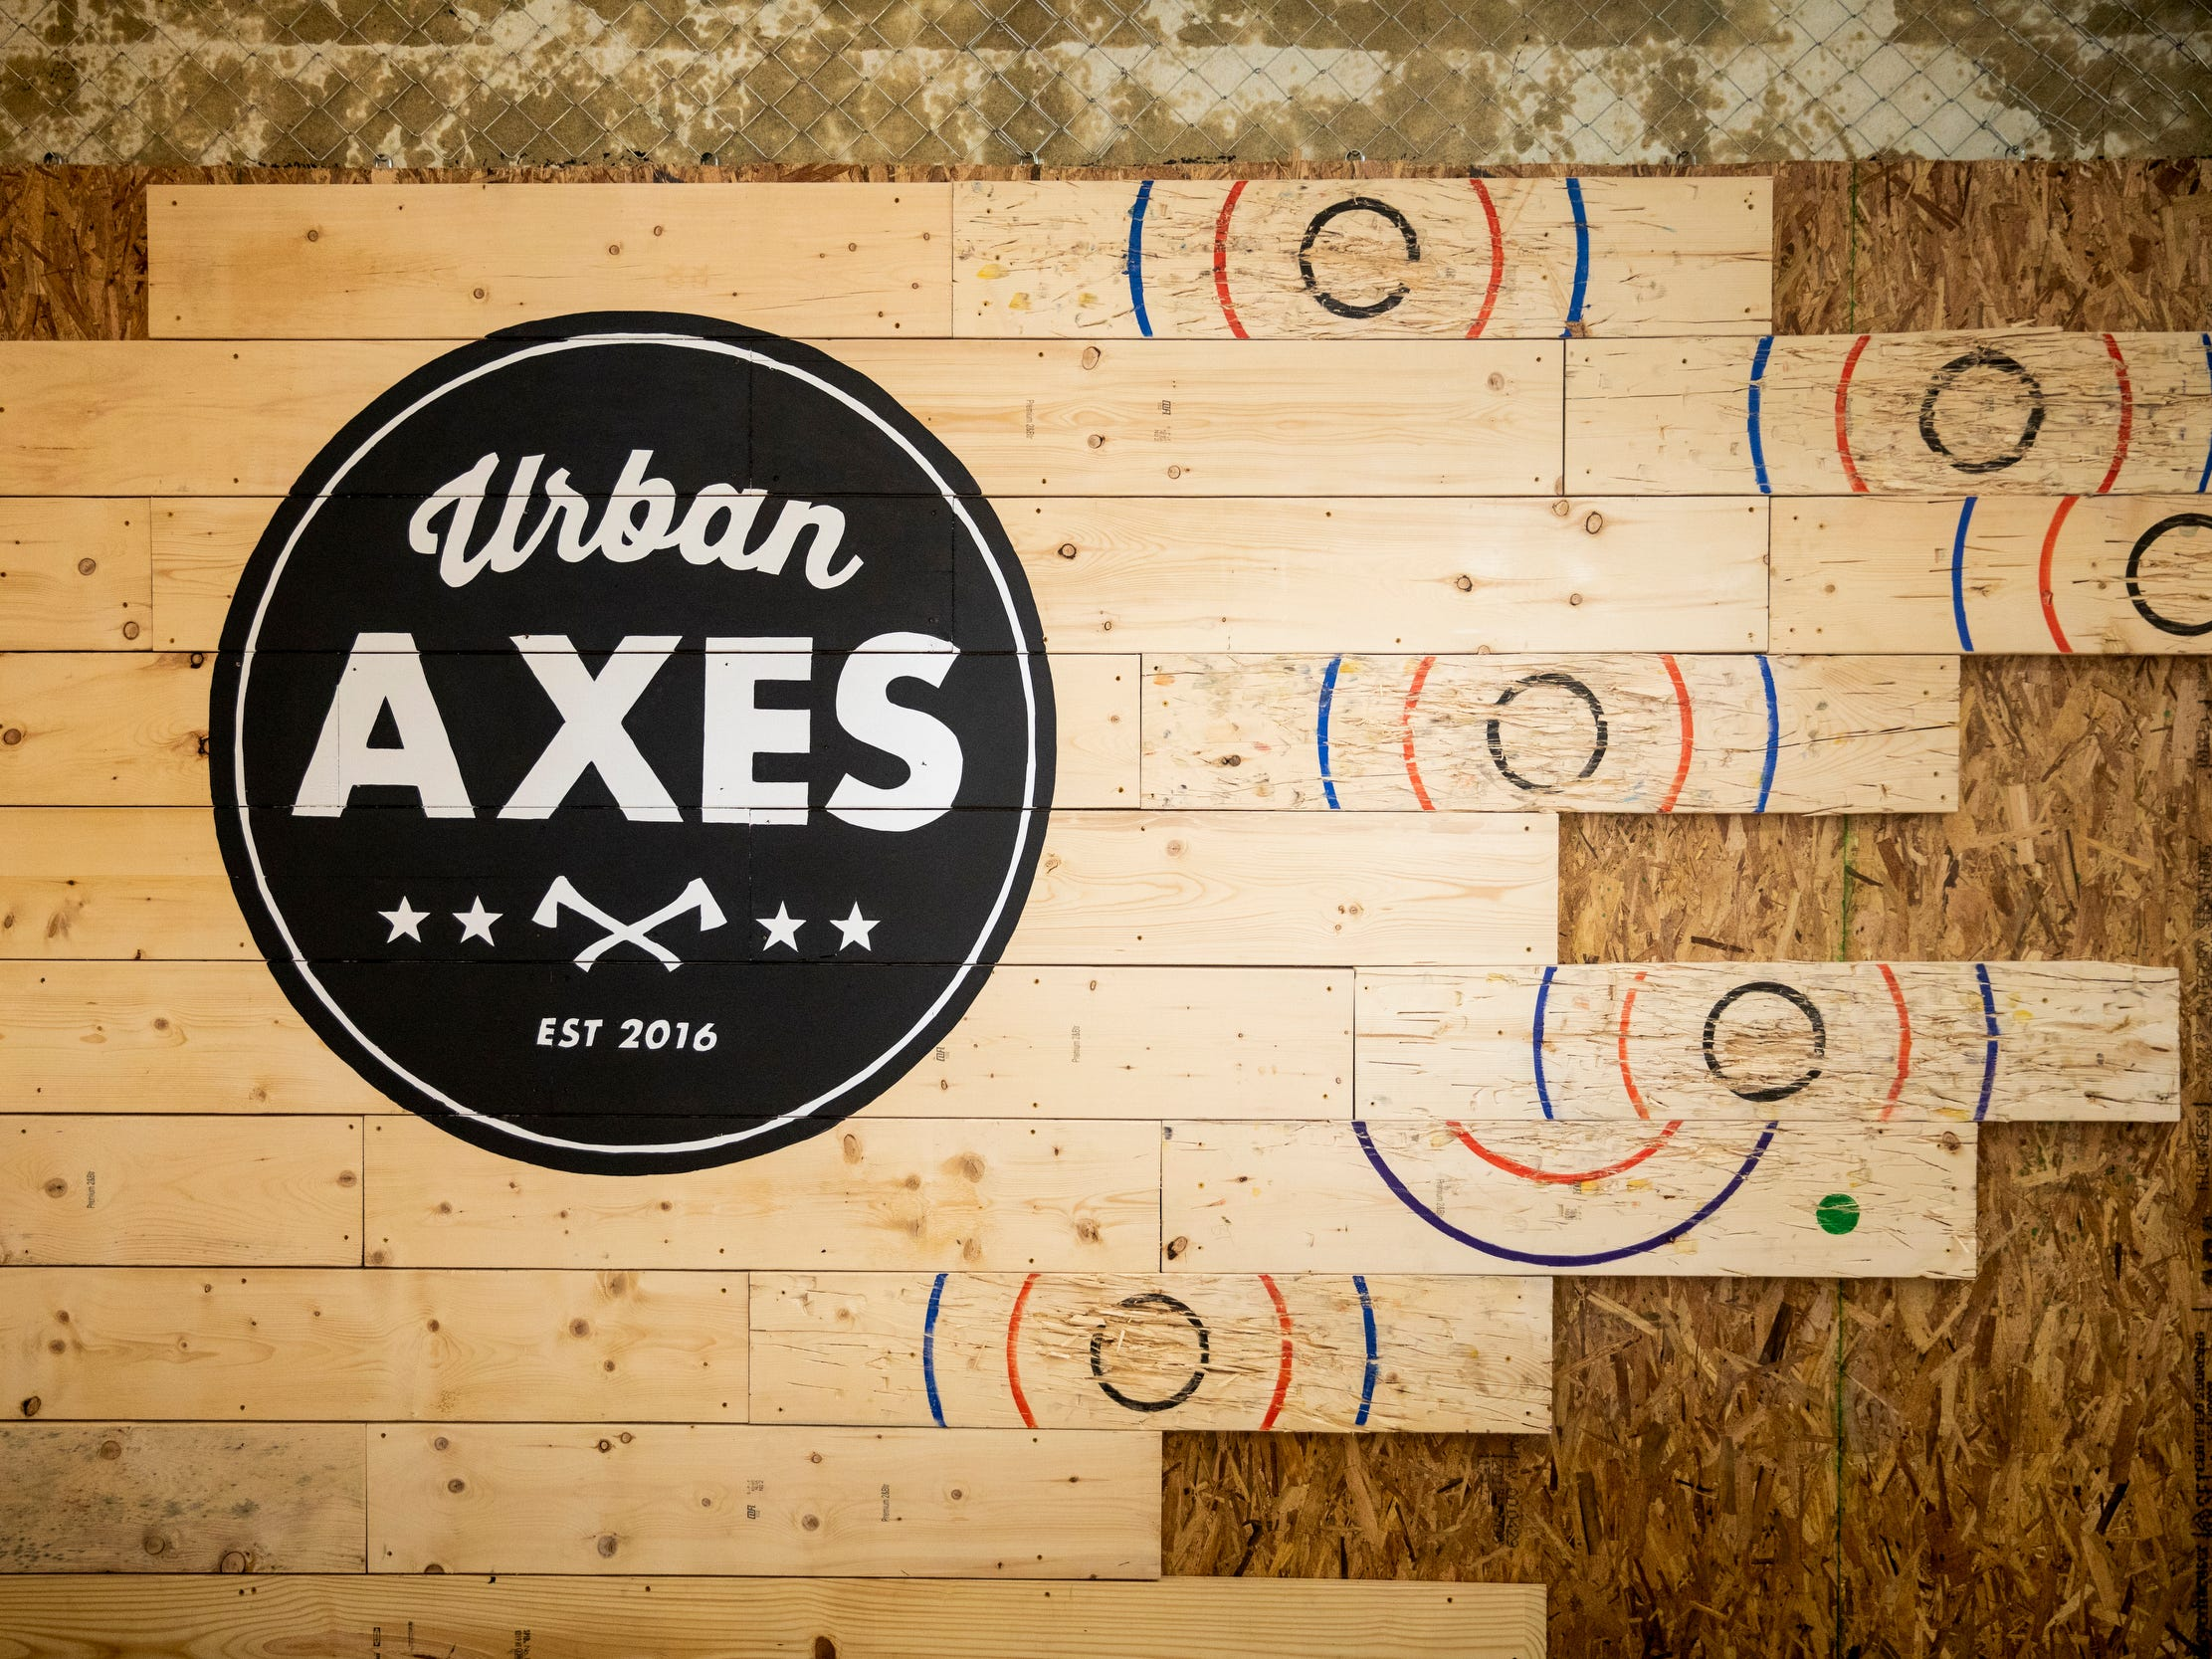 Urban Axes Cincinnati will open next to Rhinegeist Brewery on Elm Street in Over-the-Rhine Friday, January 25, 2019.